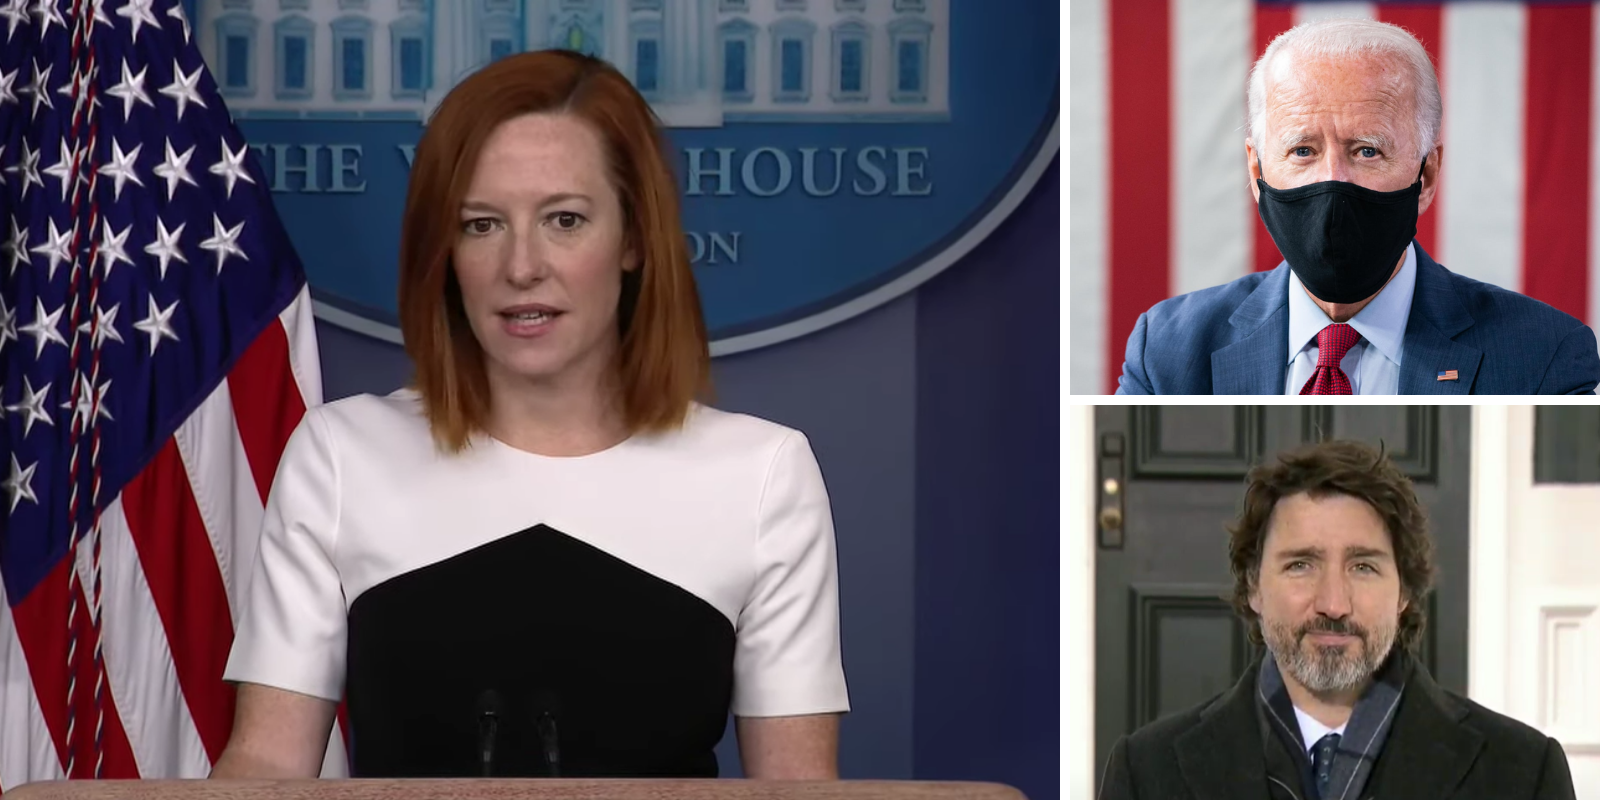 WATCH: Trudeau 'raised concerns' over Keystone XL cancellation, but Biden remains committed to ending project